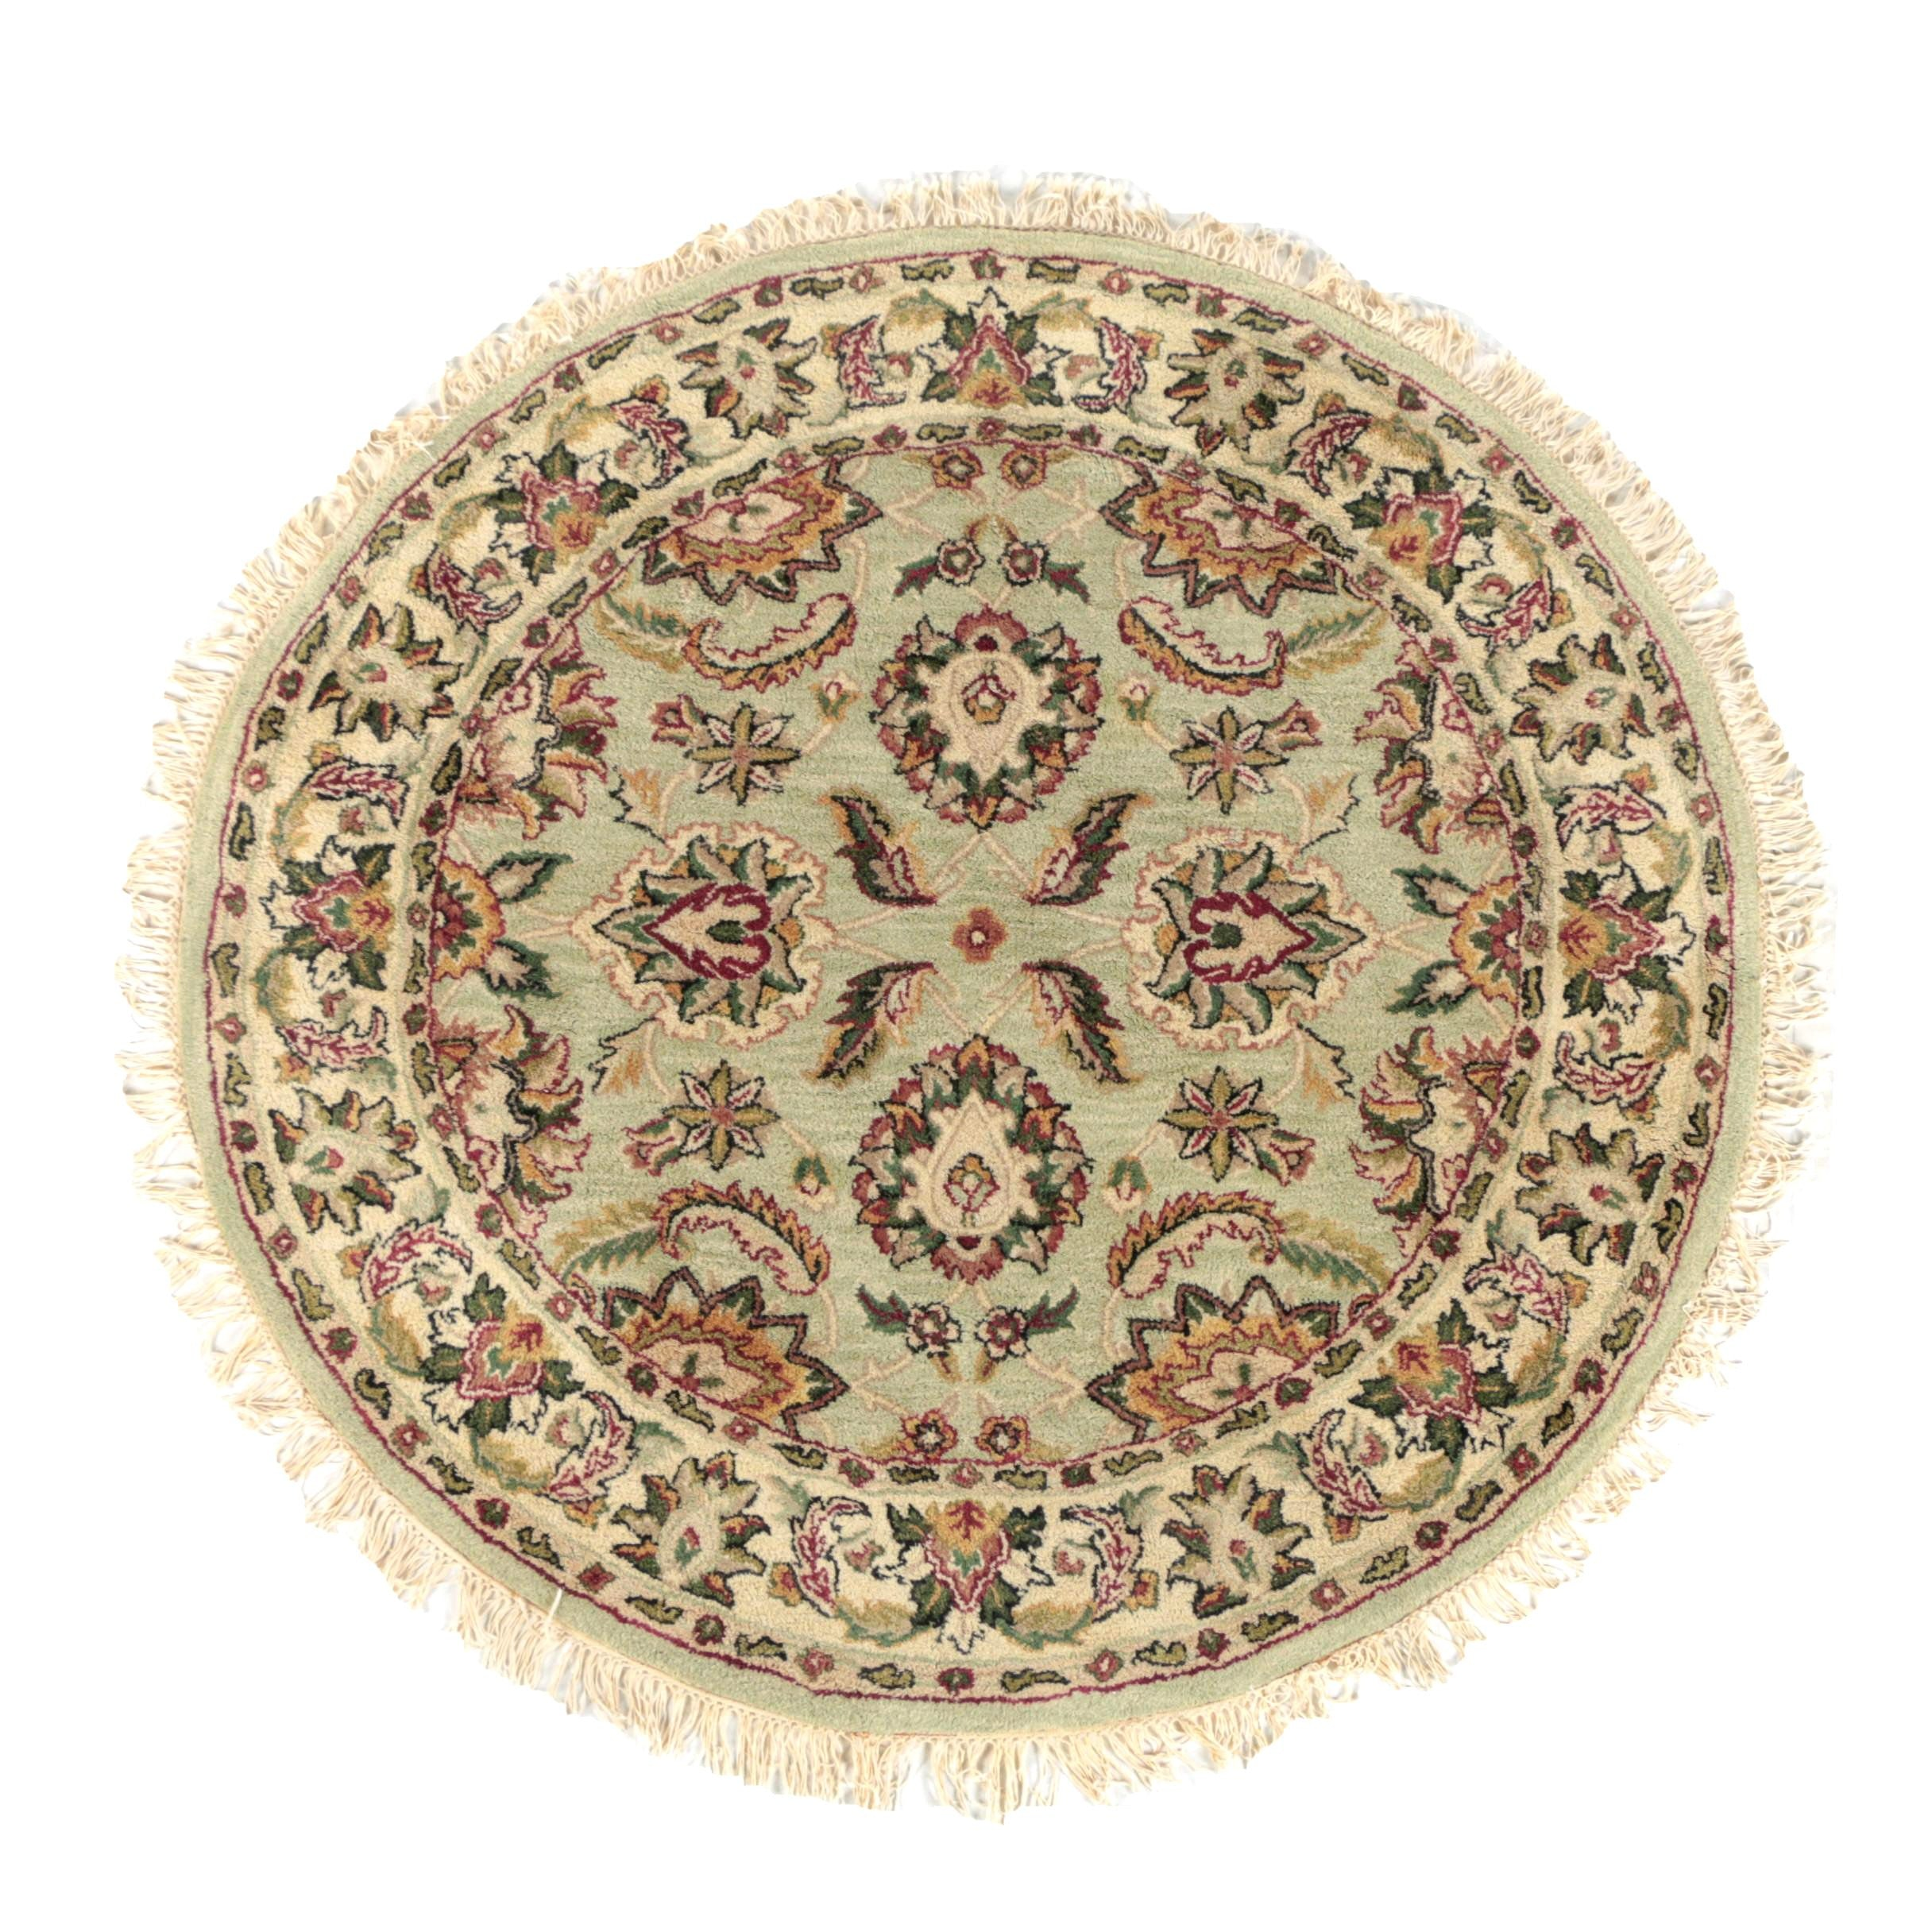 Tufted Persian Style Round Wool Area Rug